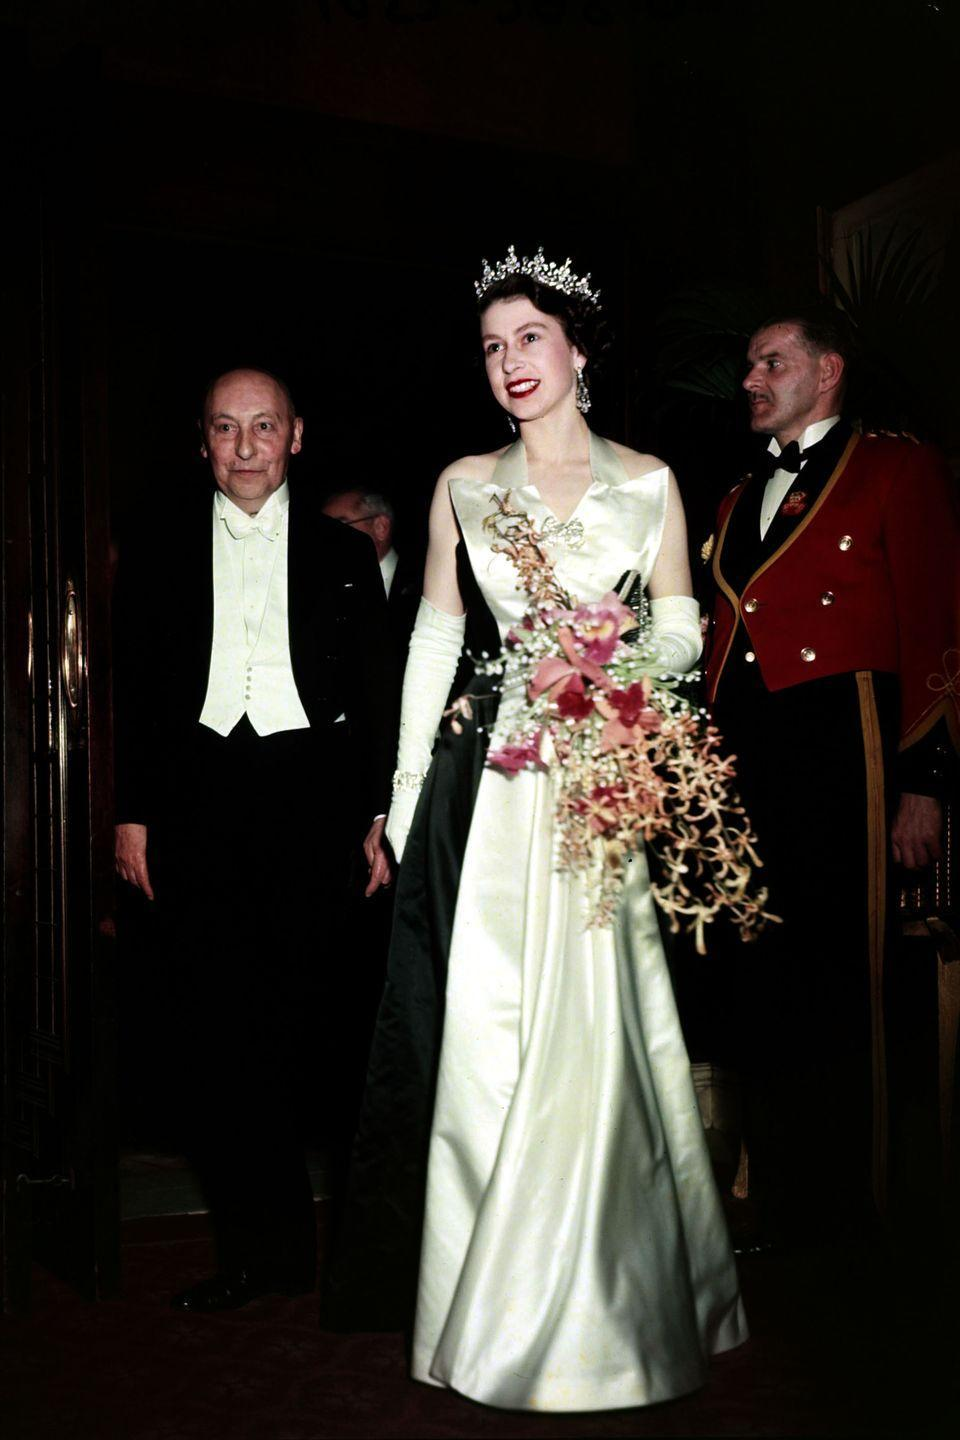 <p>The queen dons a satin sleeveless ball grown, chandelier earrings, and long satin gloves while carrying an elaborate bouquet with orchids and baby's breath.</p>